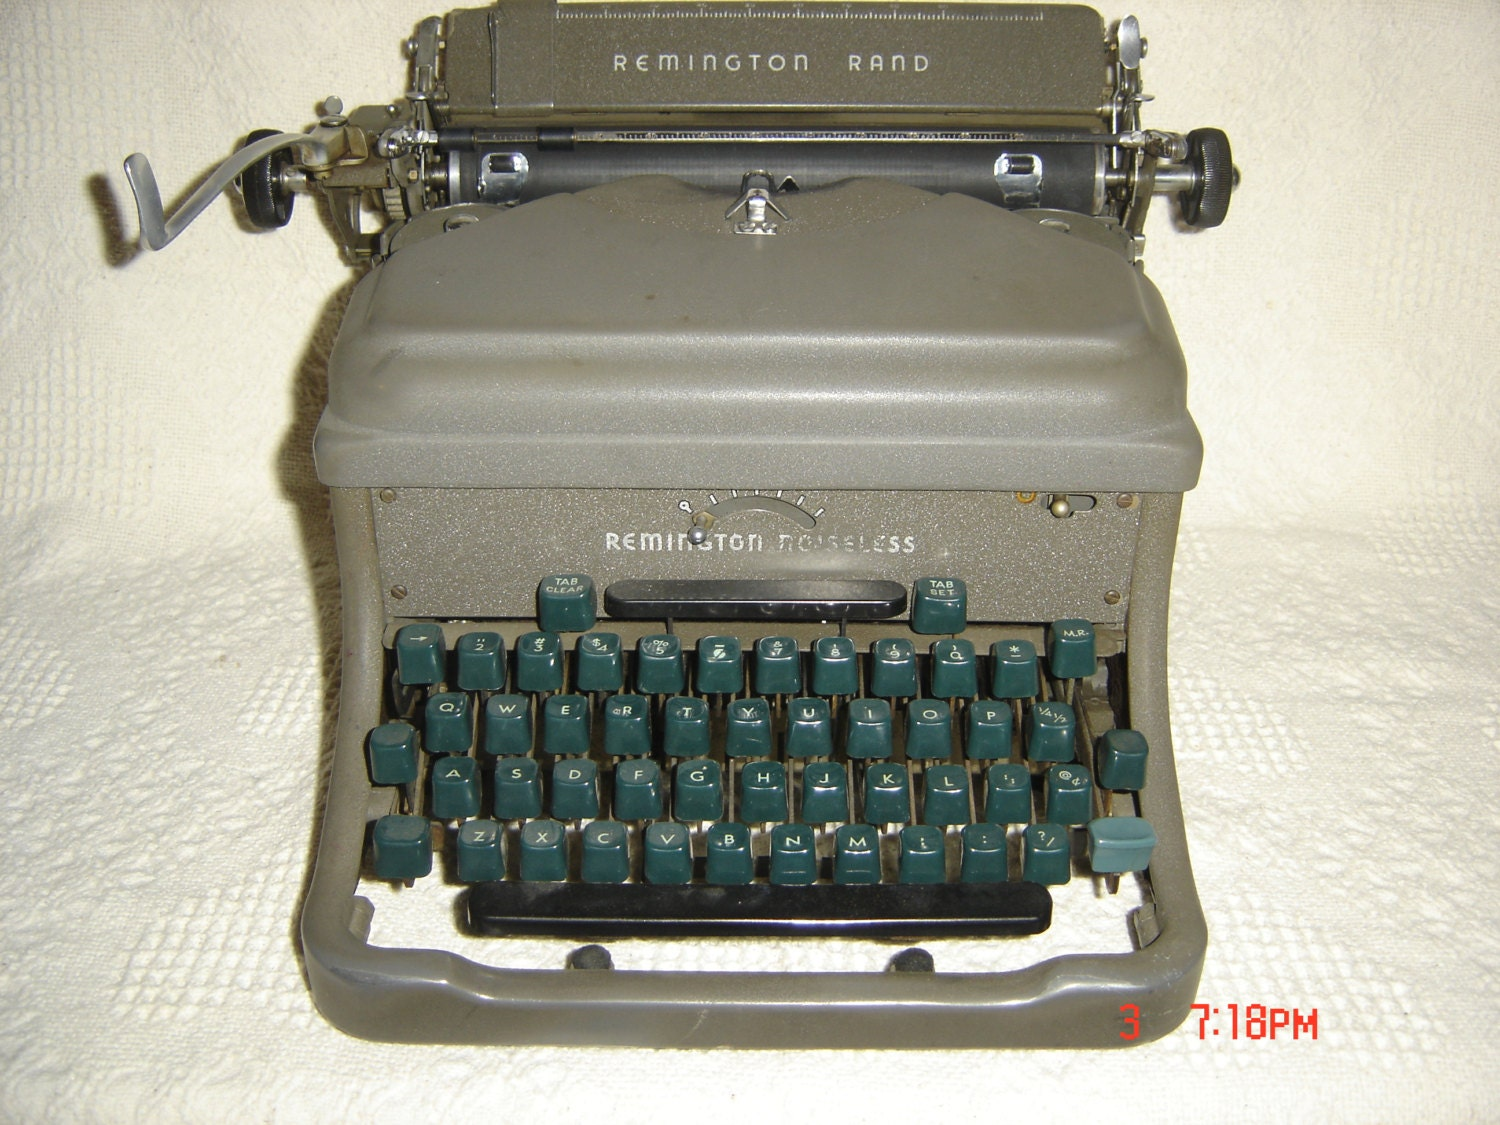 Five Practical Uses for a Vintage Manual Typewriter